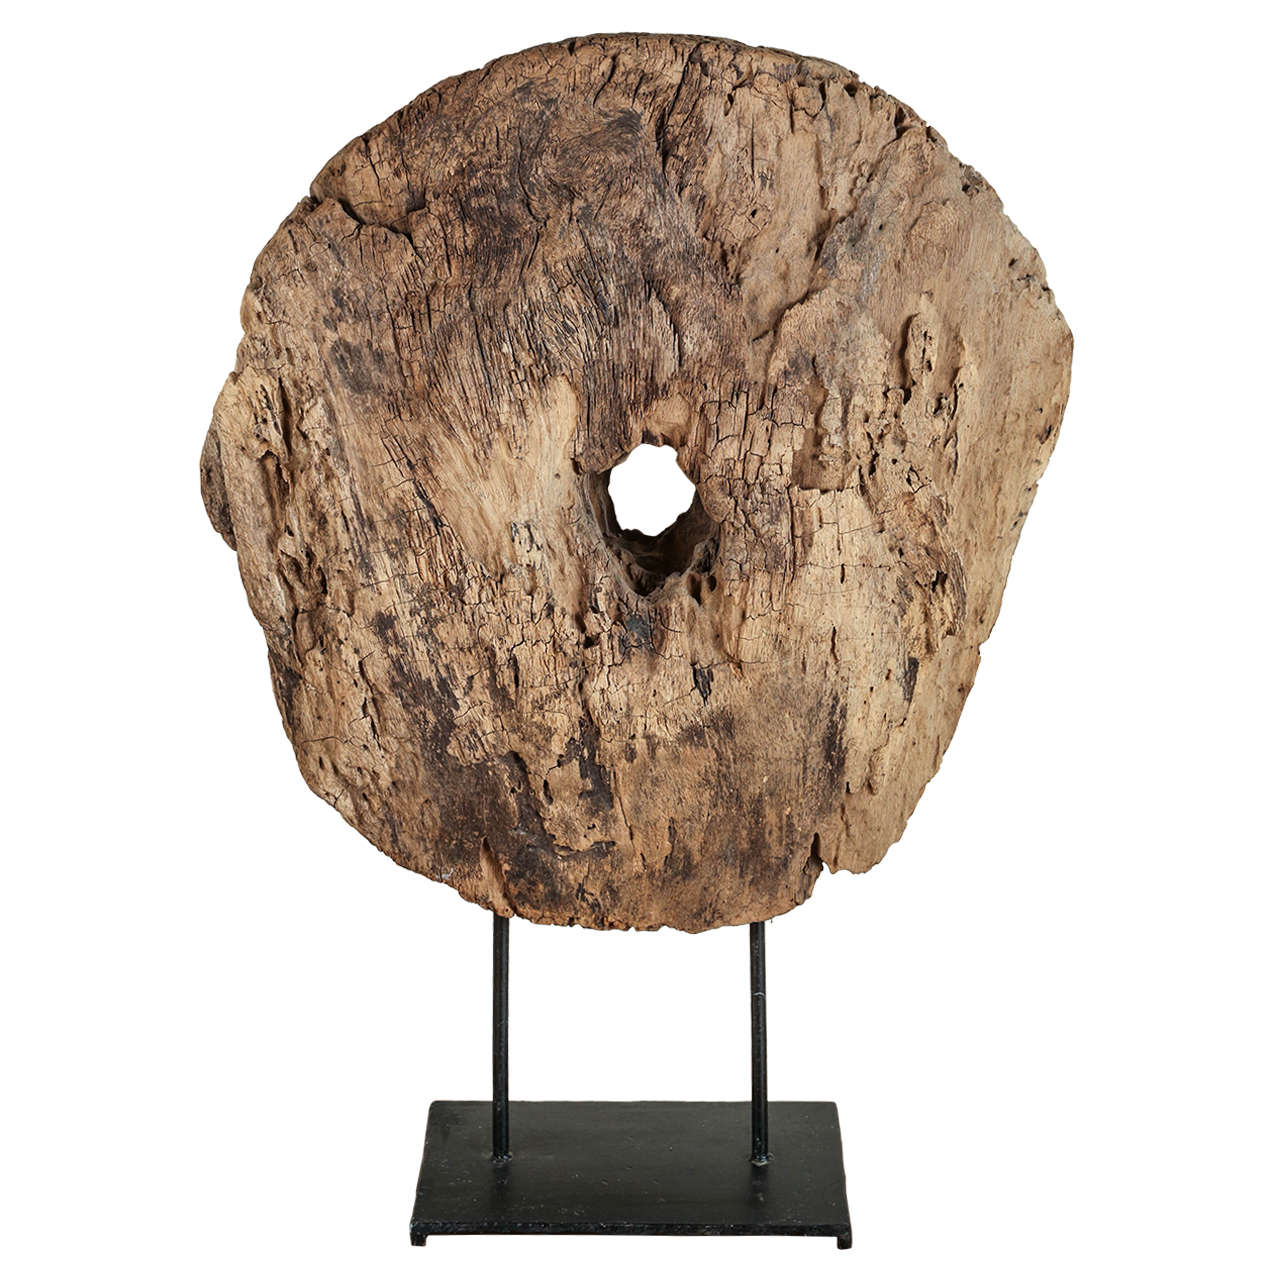 Giant reclaimed wooden disc with display stand for exhibit